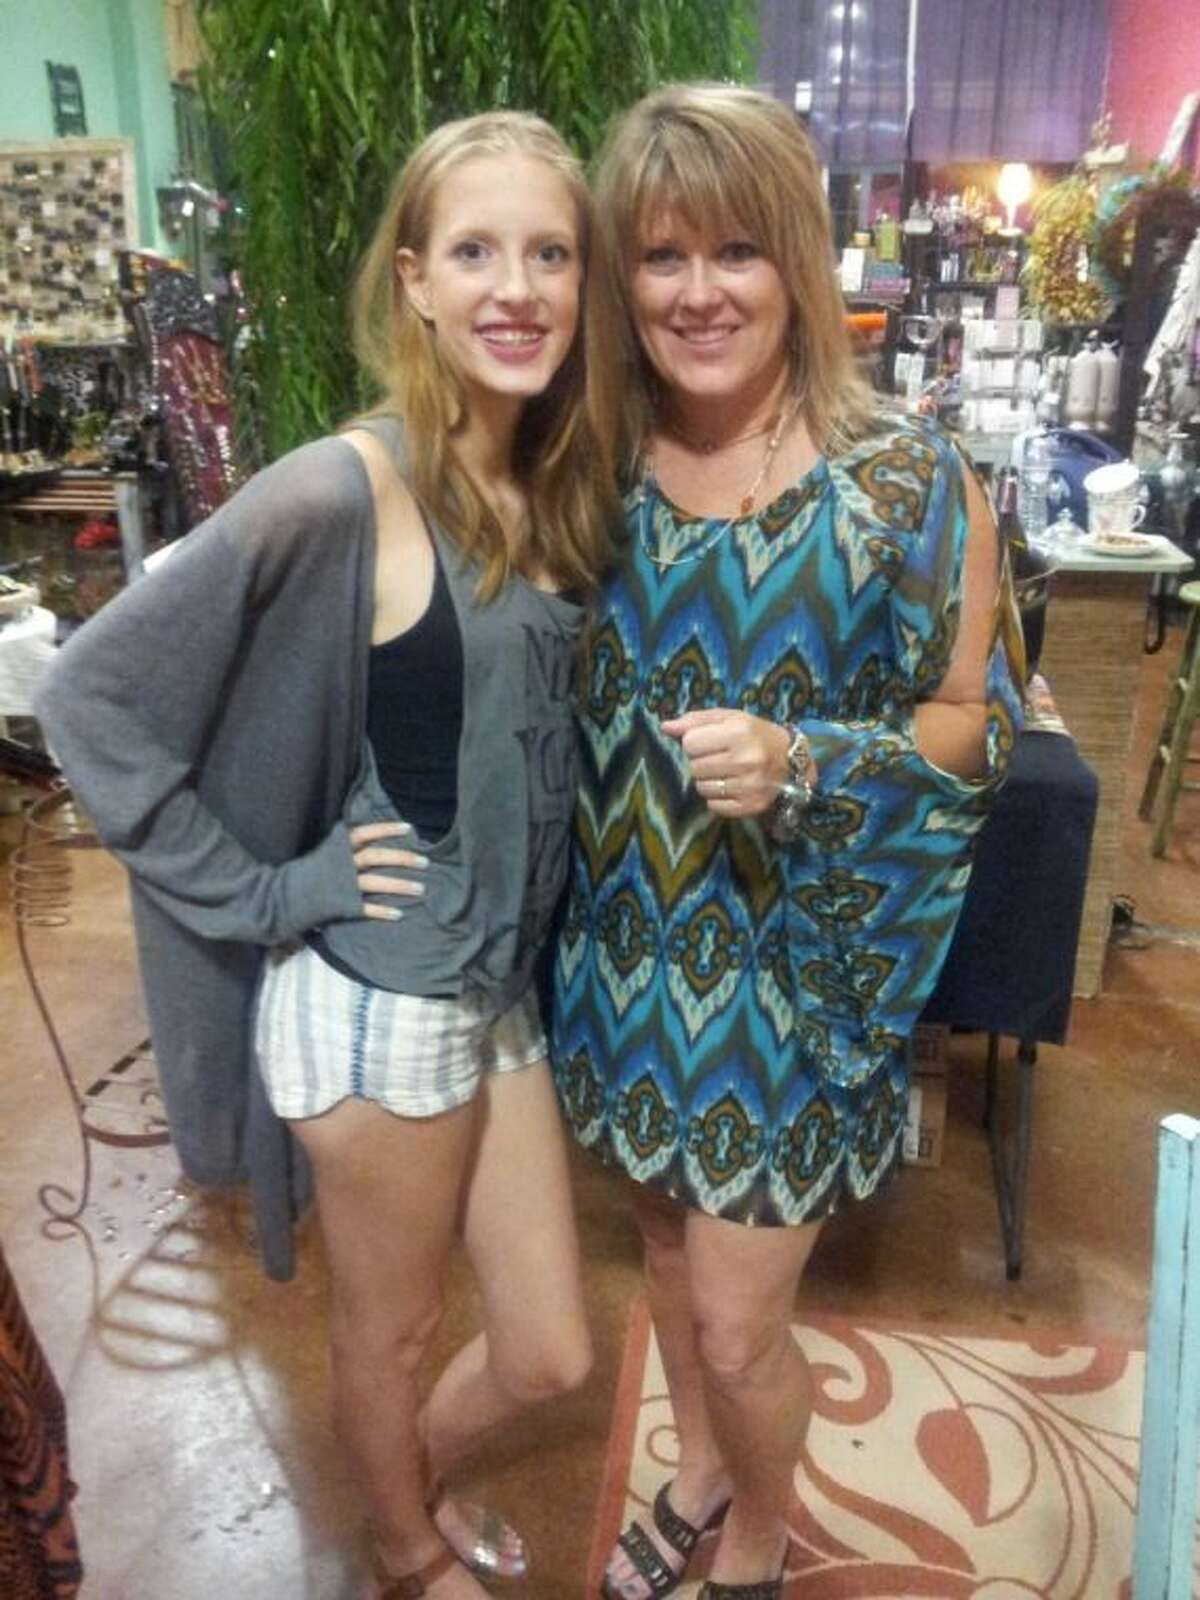 Jennifer Moore, right, with employee, Jessi; fondly called Jennika by her family and friends, a nickname her Czech grandmother gave her, celebrated the third anniversary of her shop in style.